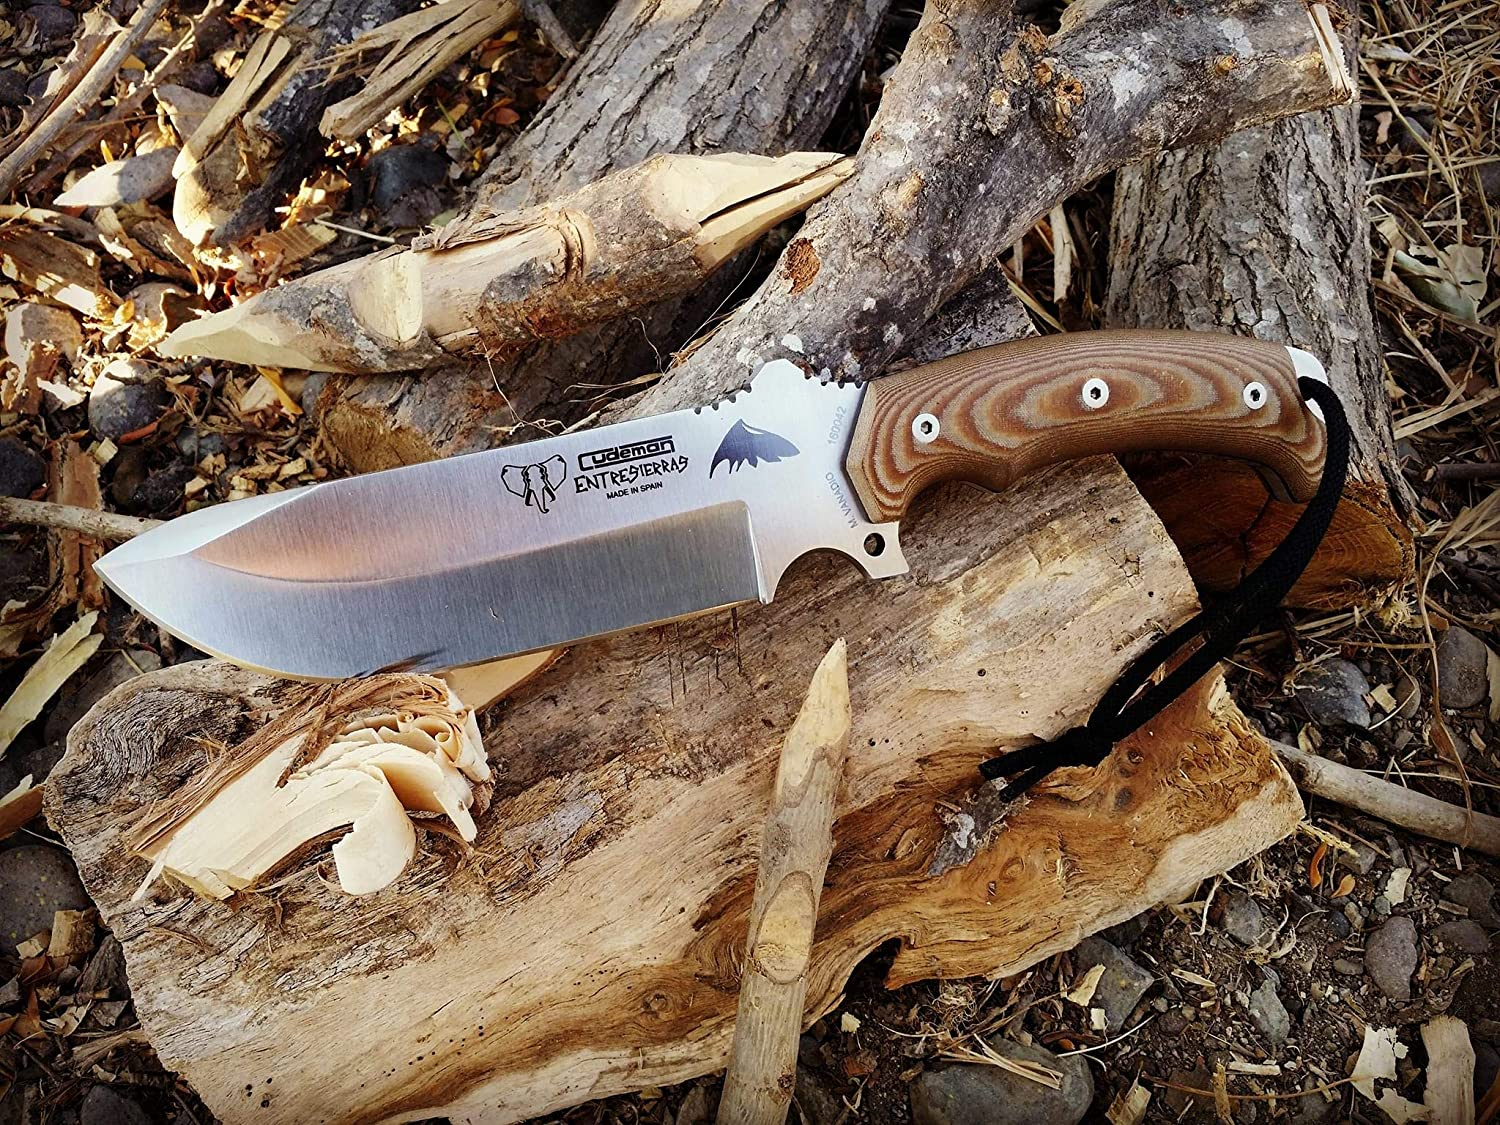 Cudeman 155-X Cuchillo, marrón, L